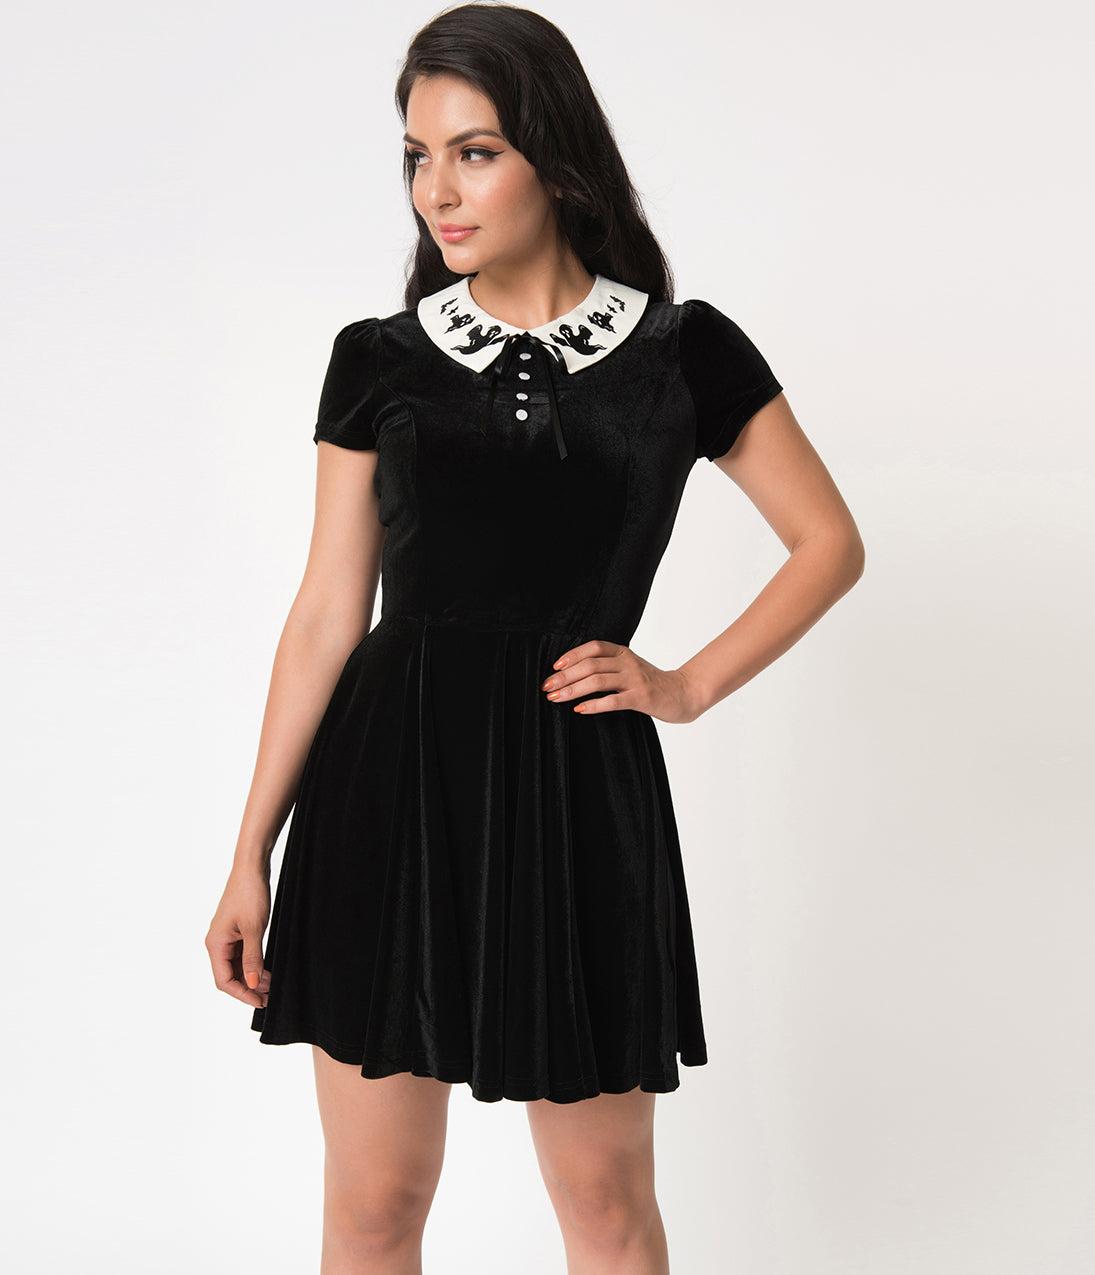 Vintage Retro Halloween Themed Clothing Hell Bunny Black Velvet Casper Short Sleeve Flare Dress $46.00 AT vintagedancer.com